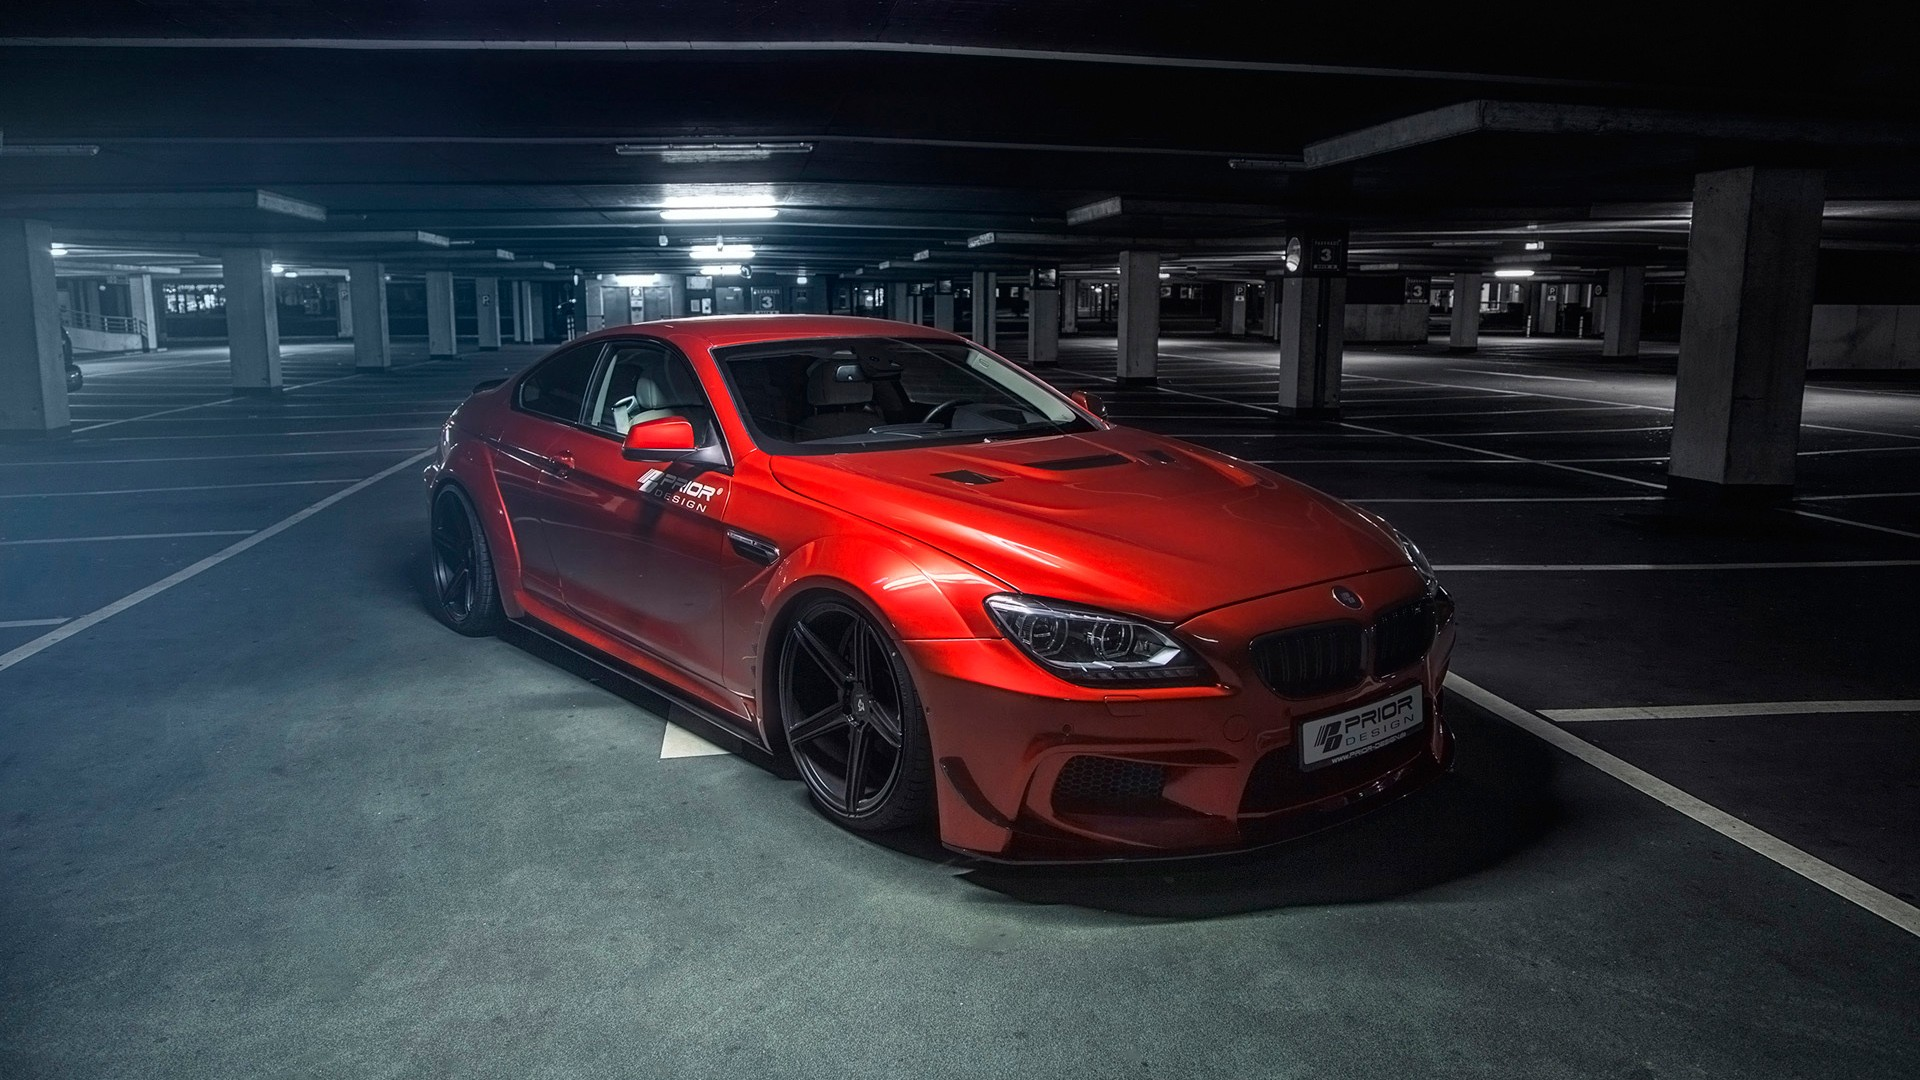 Prior Design BMW 6 Series 2014 Wallpaper | HD Car ...